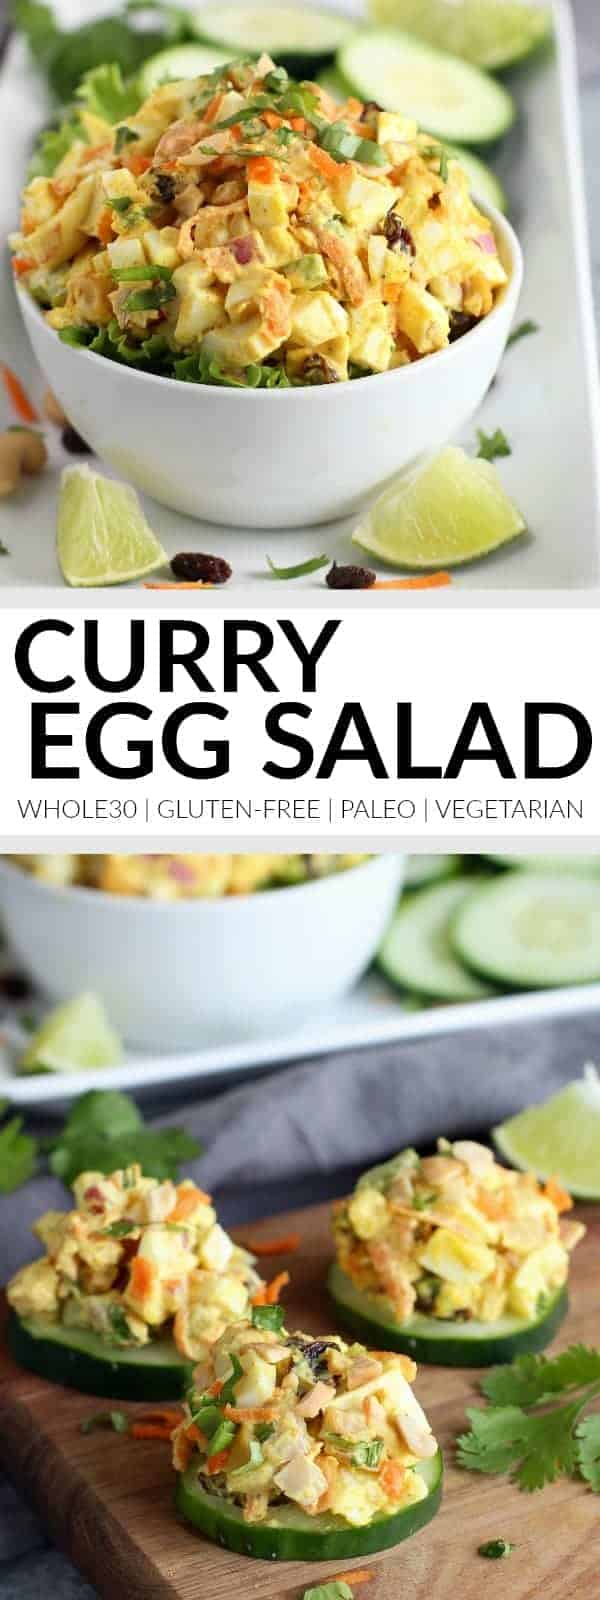 Pinterest image for curry egg salad